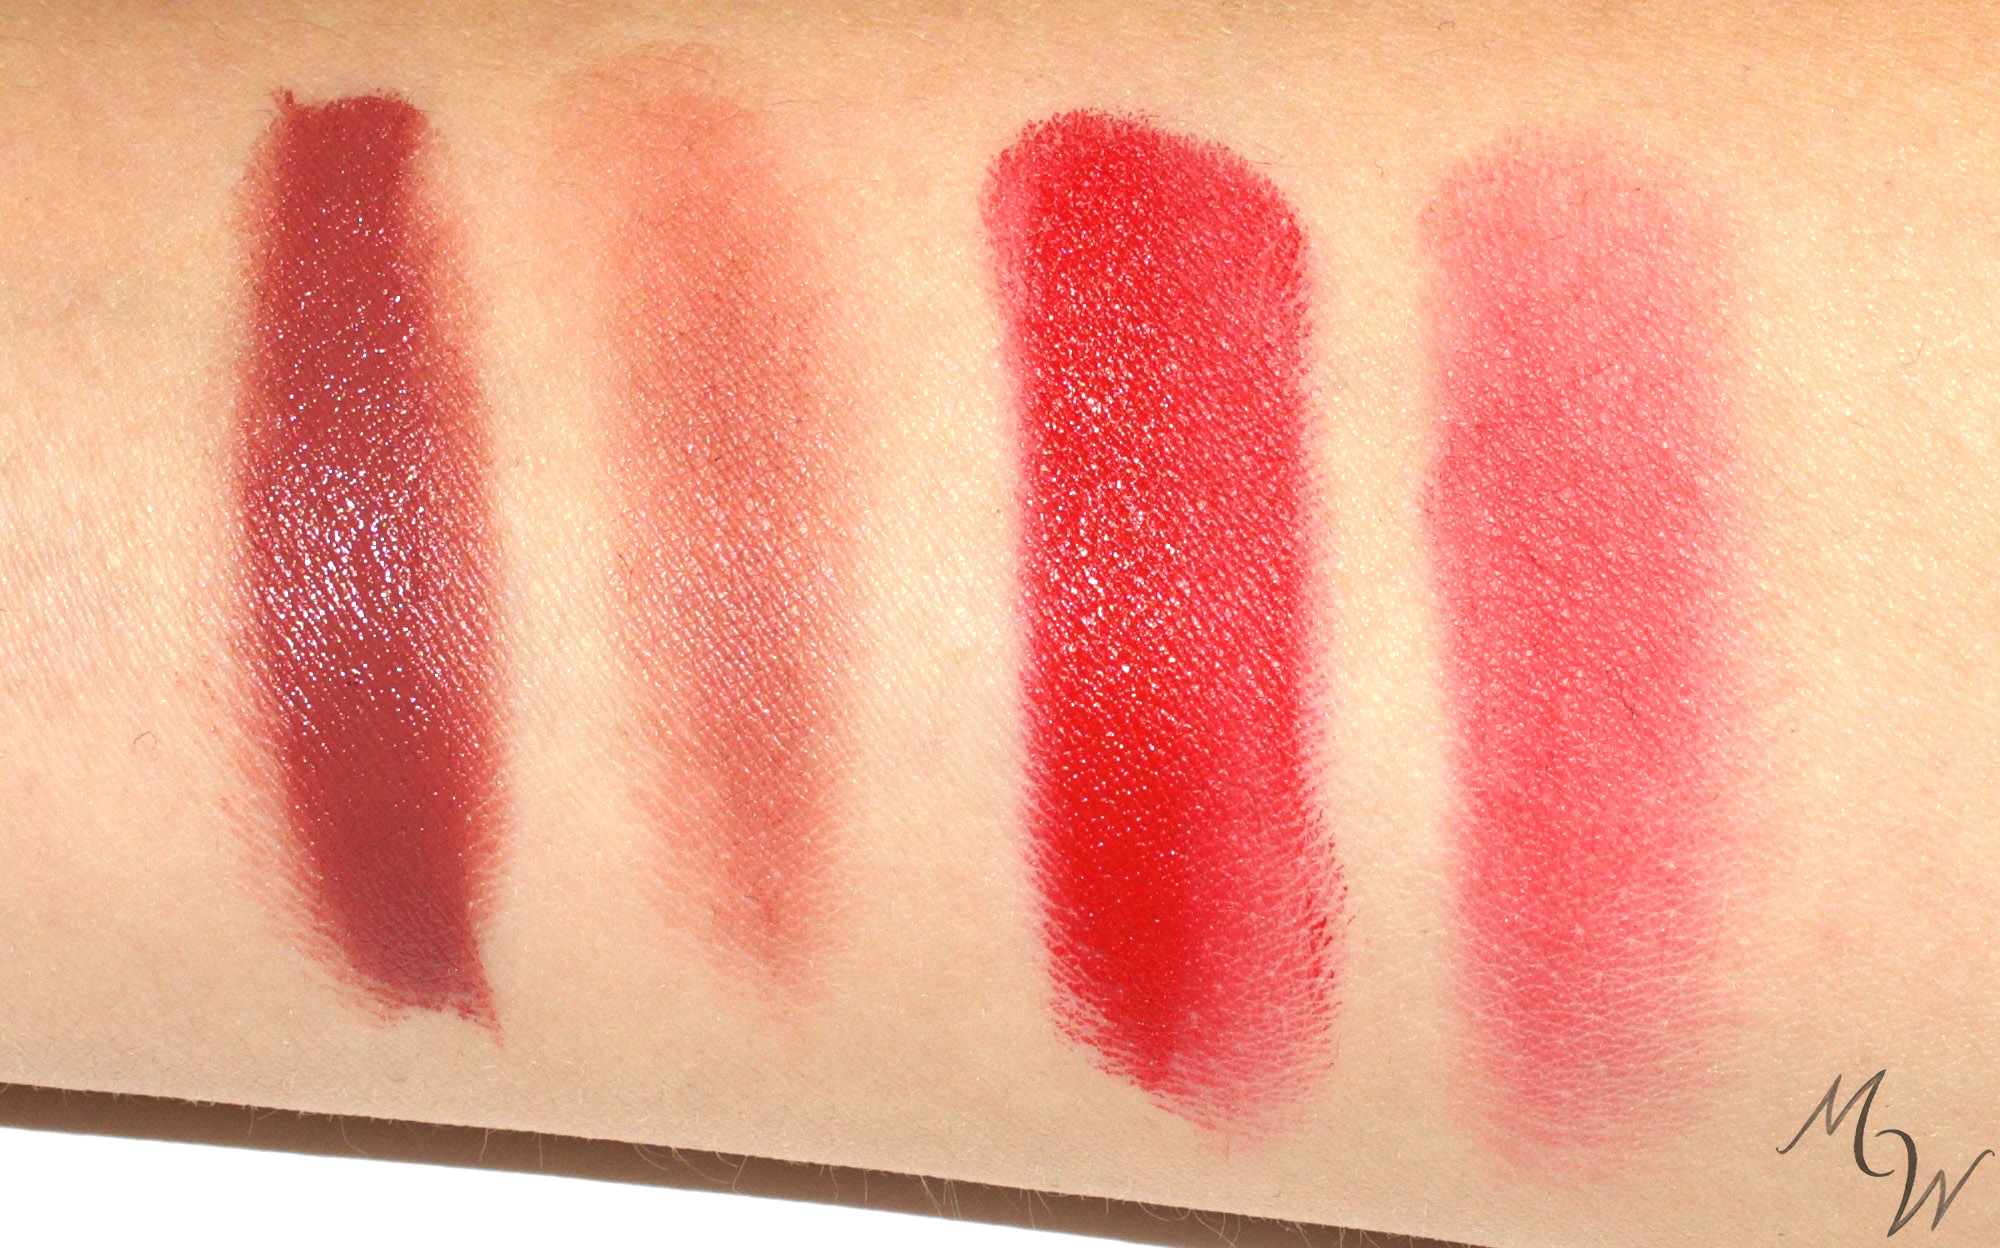 Satin Lipsticks in Mocha and Red, full and sheer.